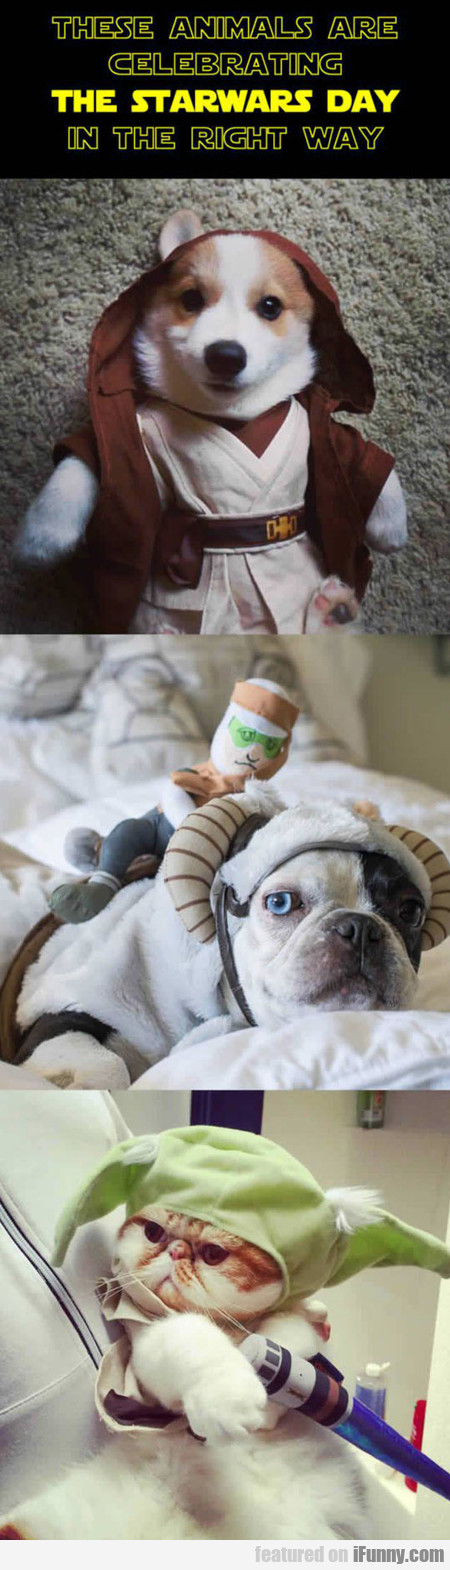 Animals Celebrating The Star Wars Day